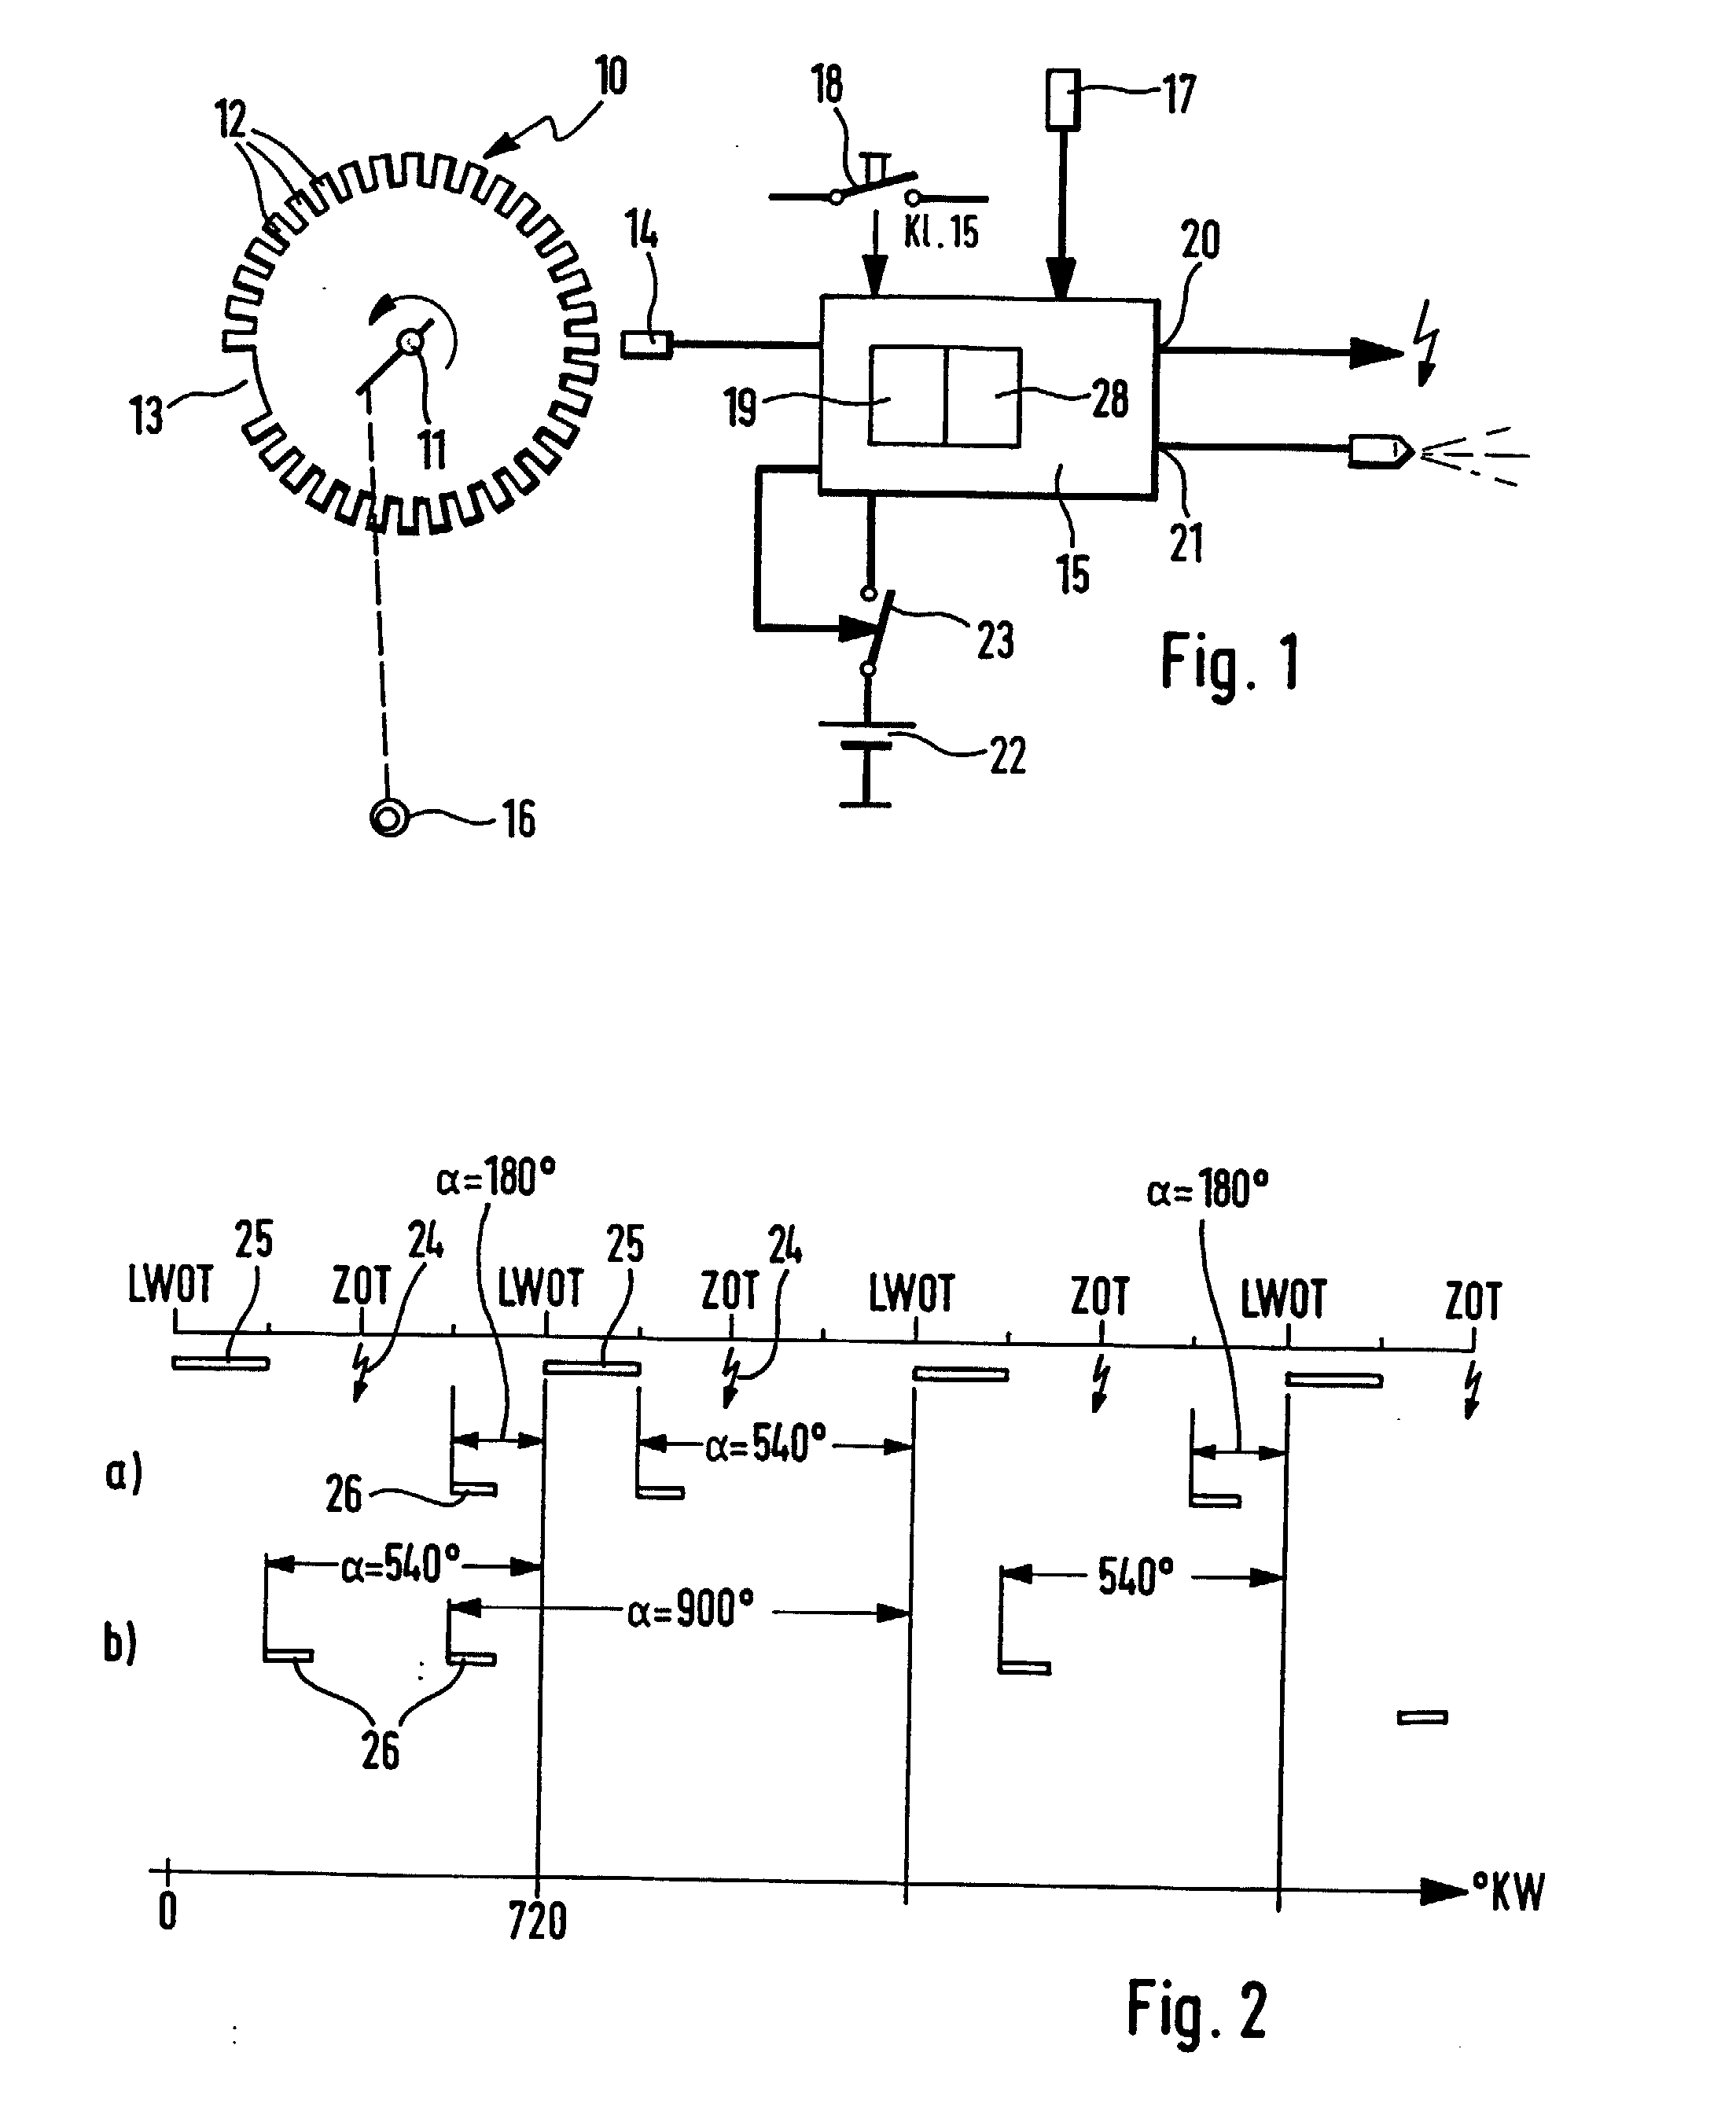 Patent Ep0684375b1 Apparatus For The Regulation Of An Internal 1 9 Sefi Engine Diagram Drawing